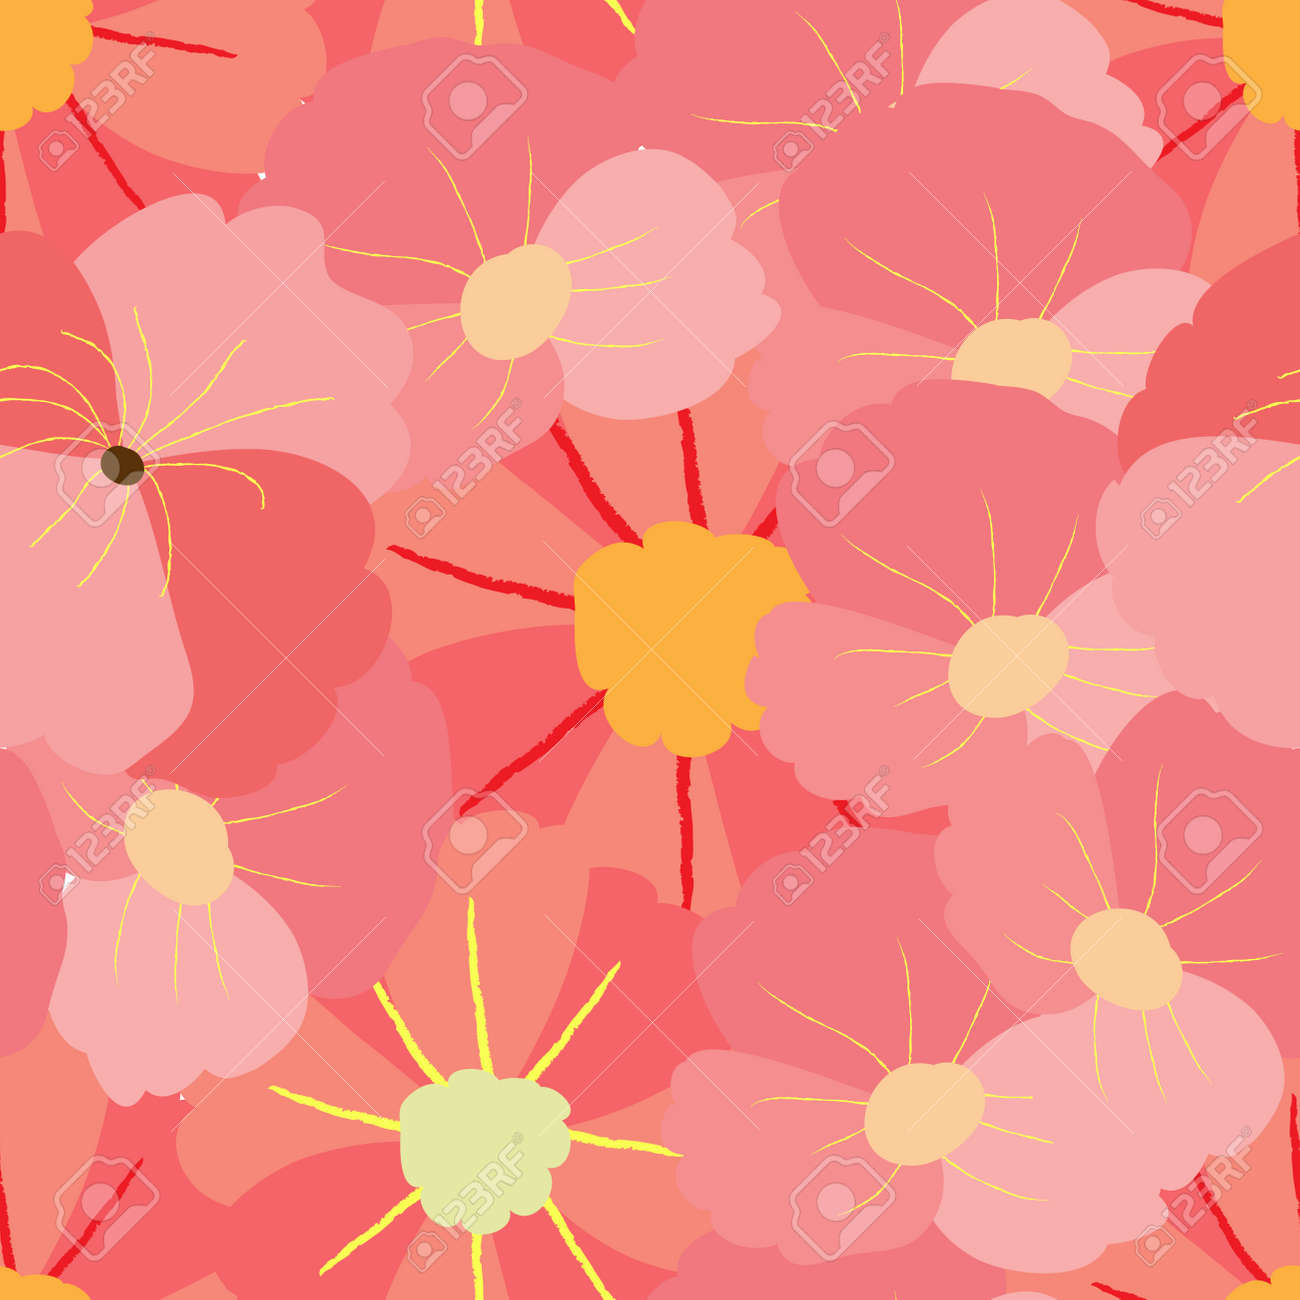 Spring Flowers Backgrounds Seamless Floral Pattern Royalty Free